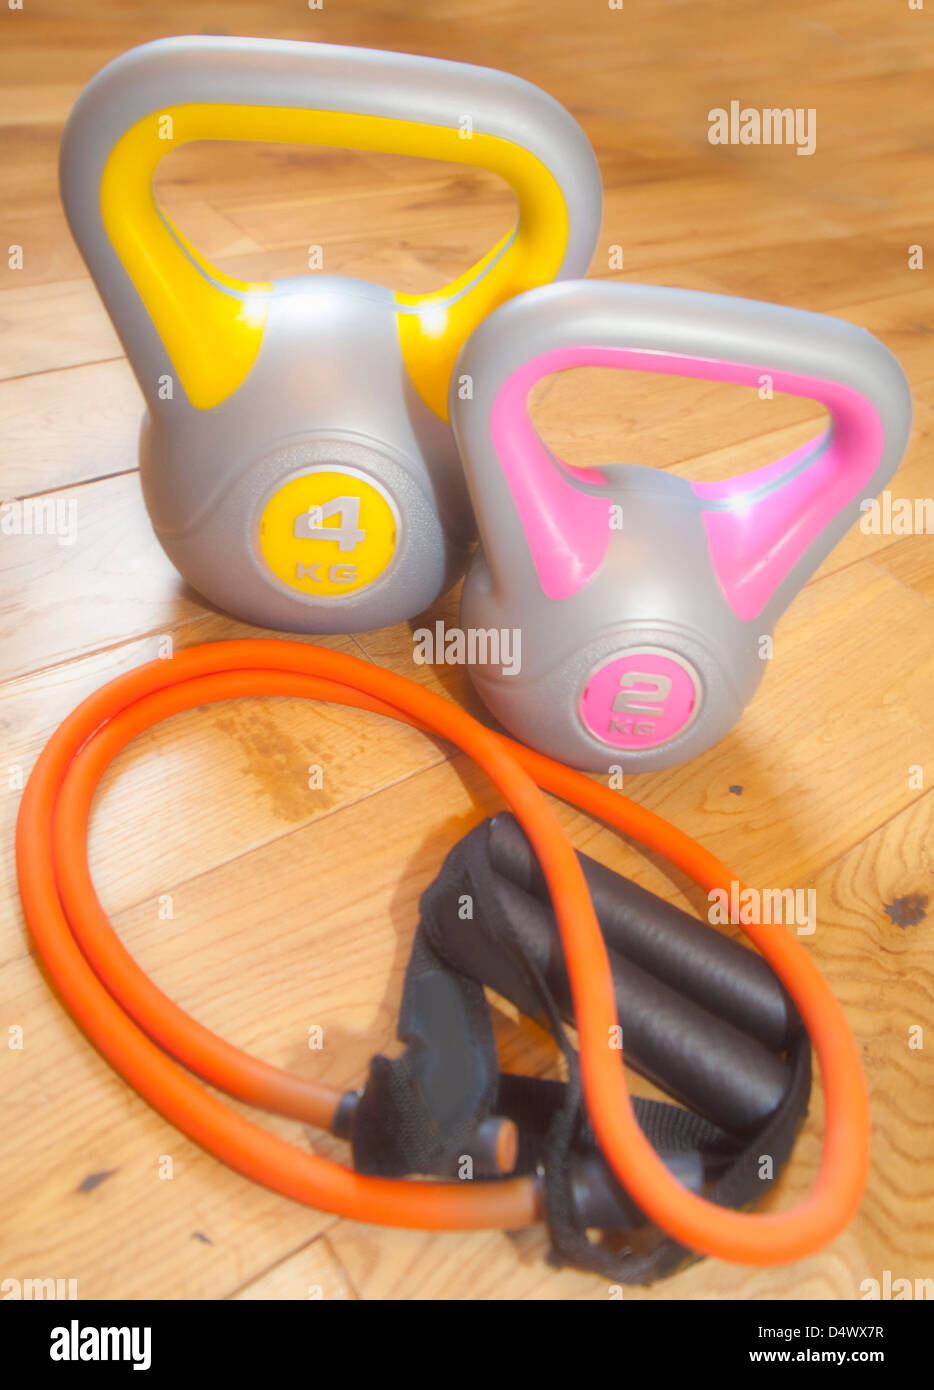 exercise equipment kettlebells and band - Stock Image